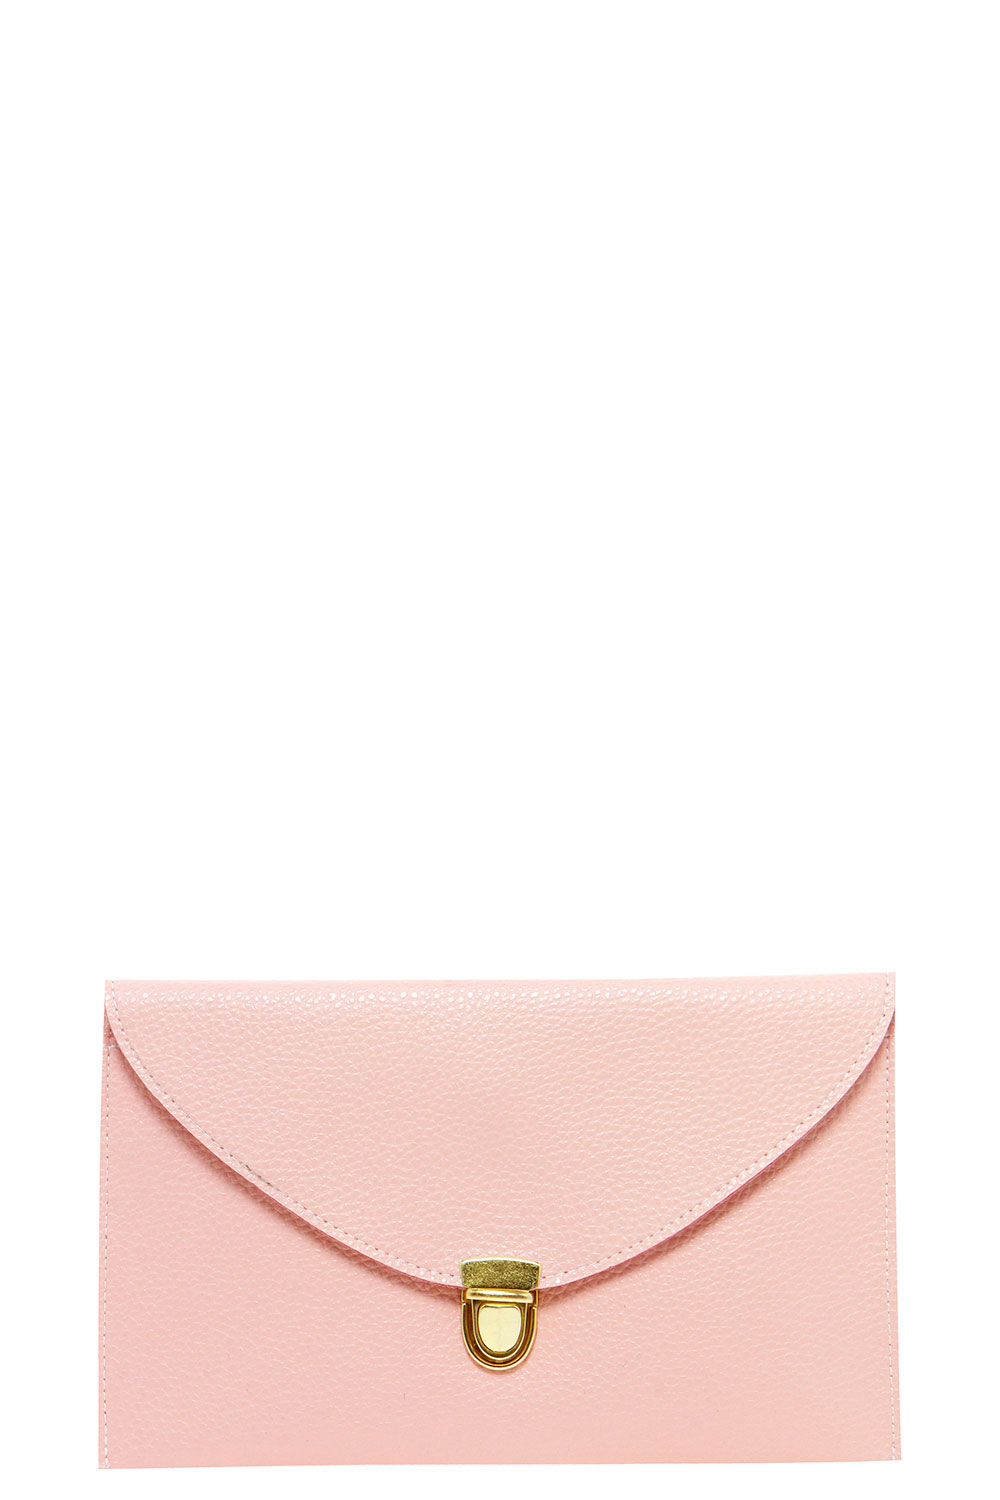 Lily Clasp Fasten Clutch Bag - pink